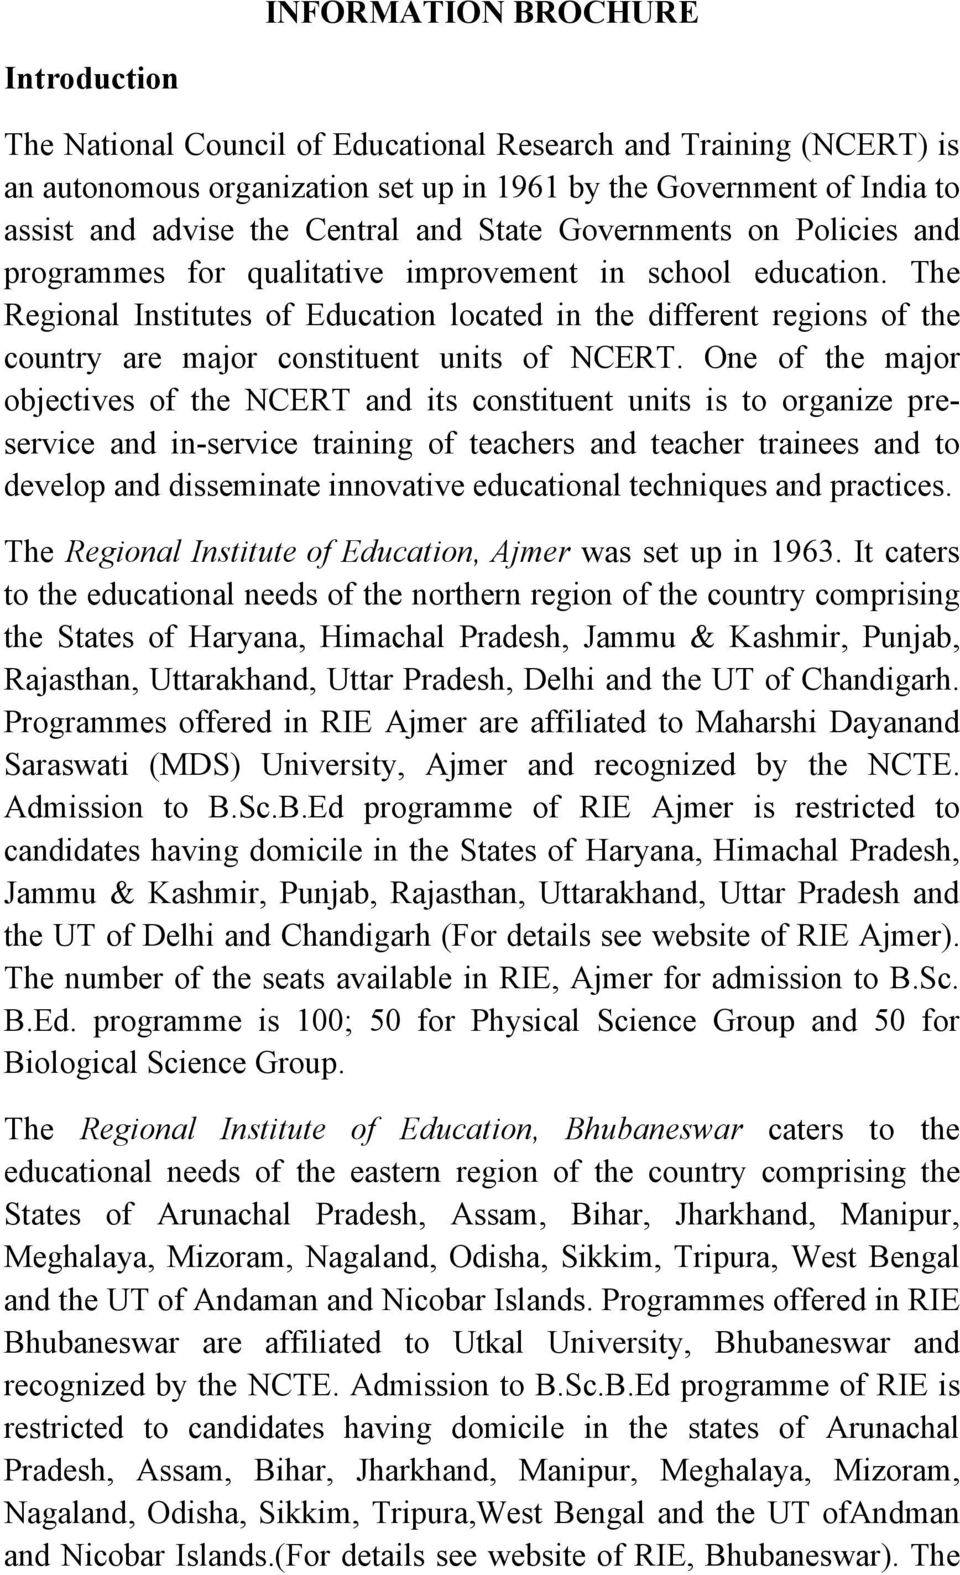 The Regional Institutes of Education located in the different regions of the country are major constituent units of NCERT.